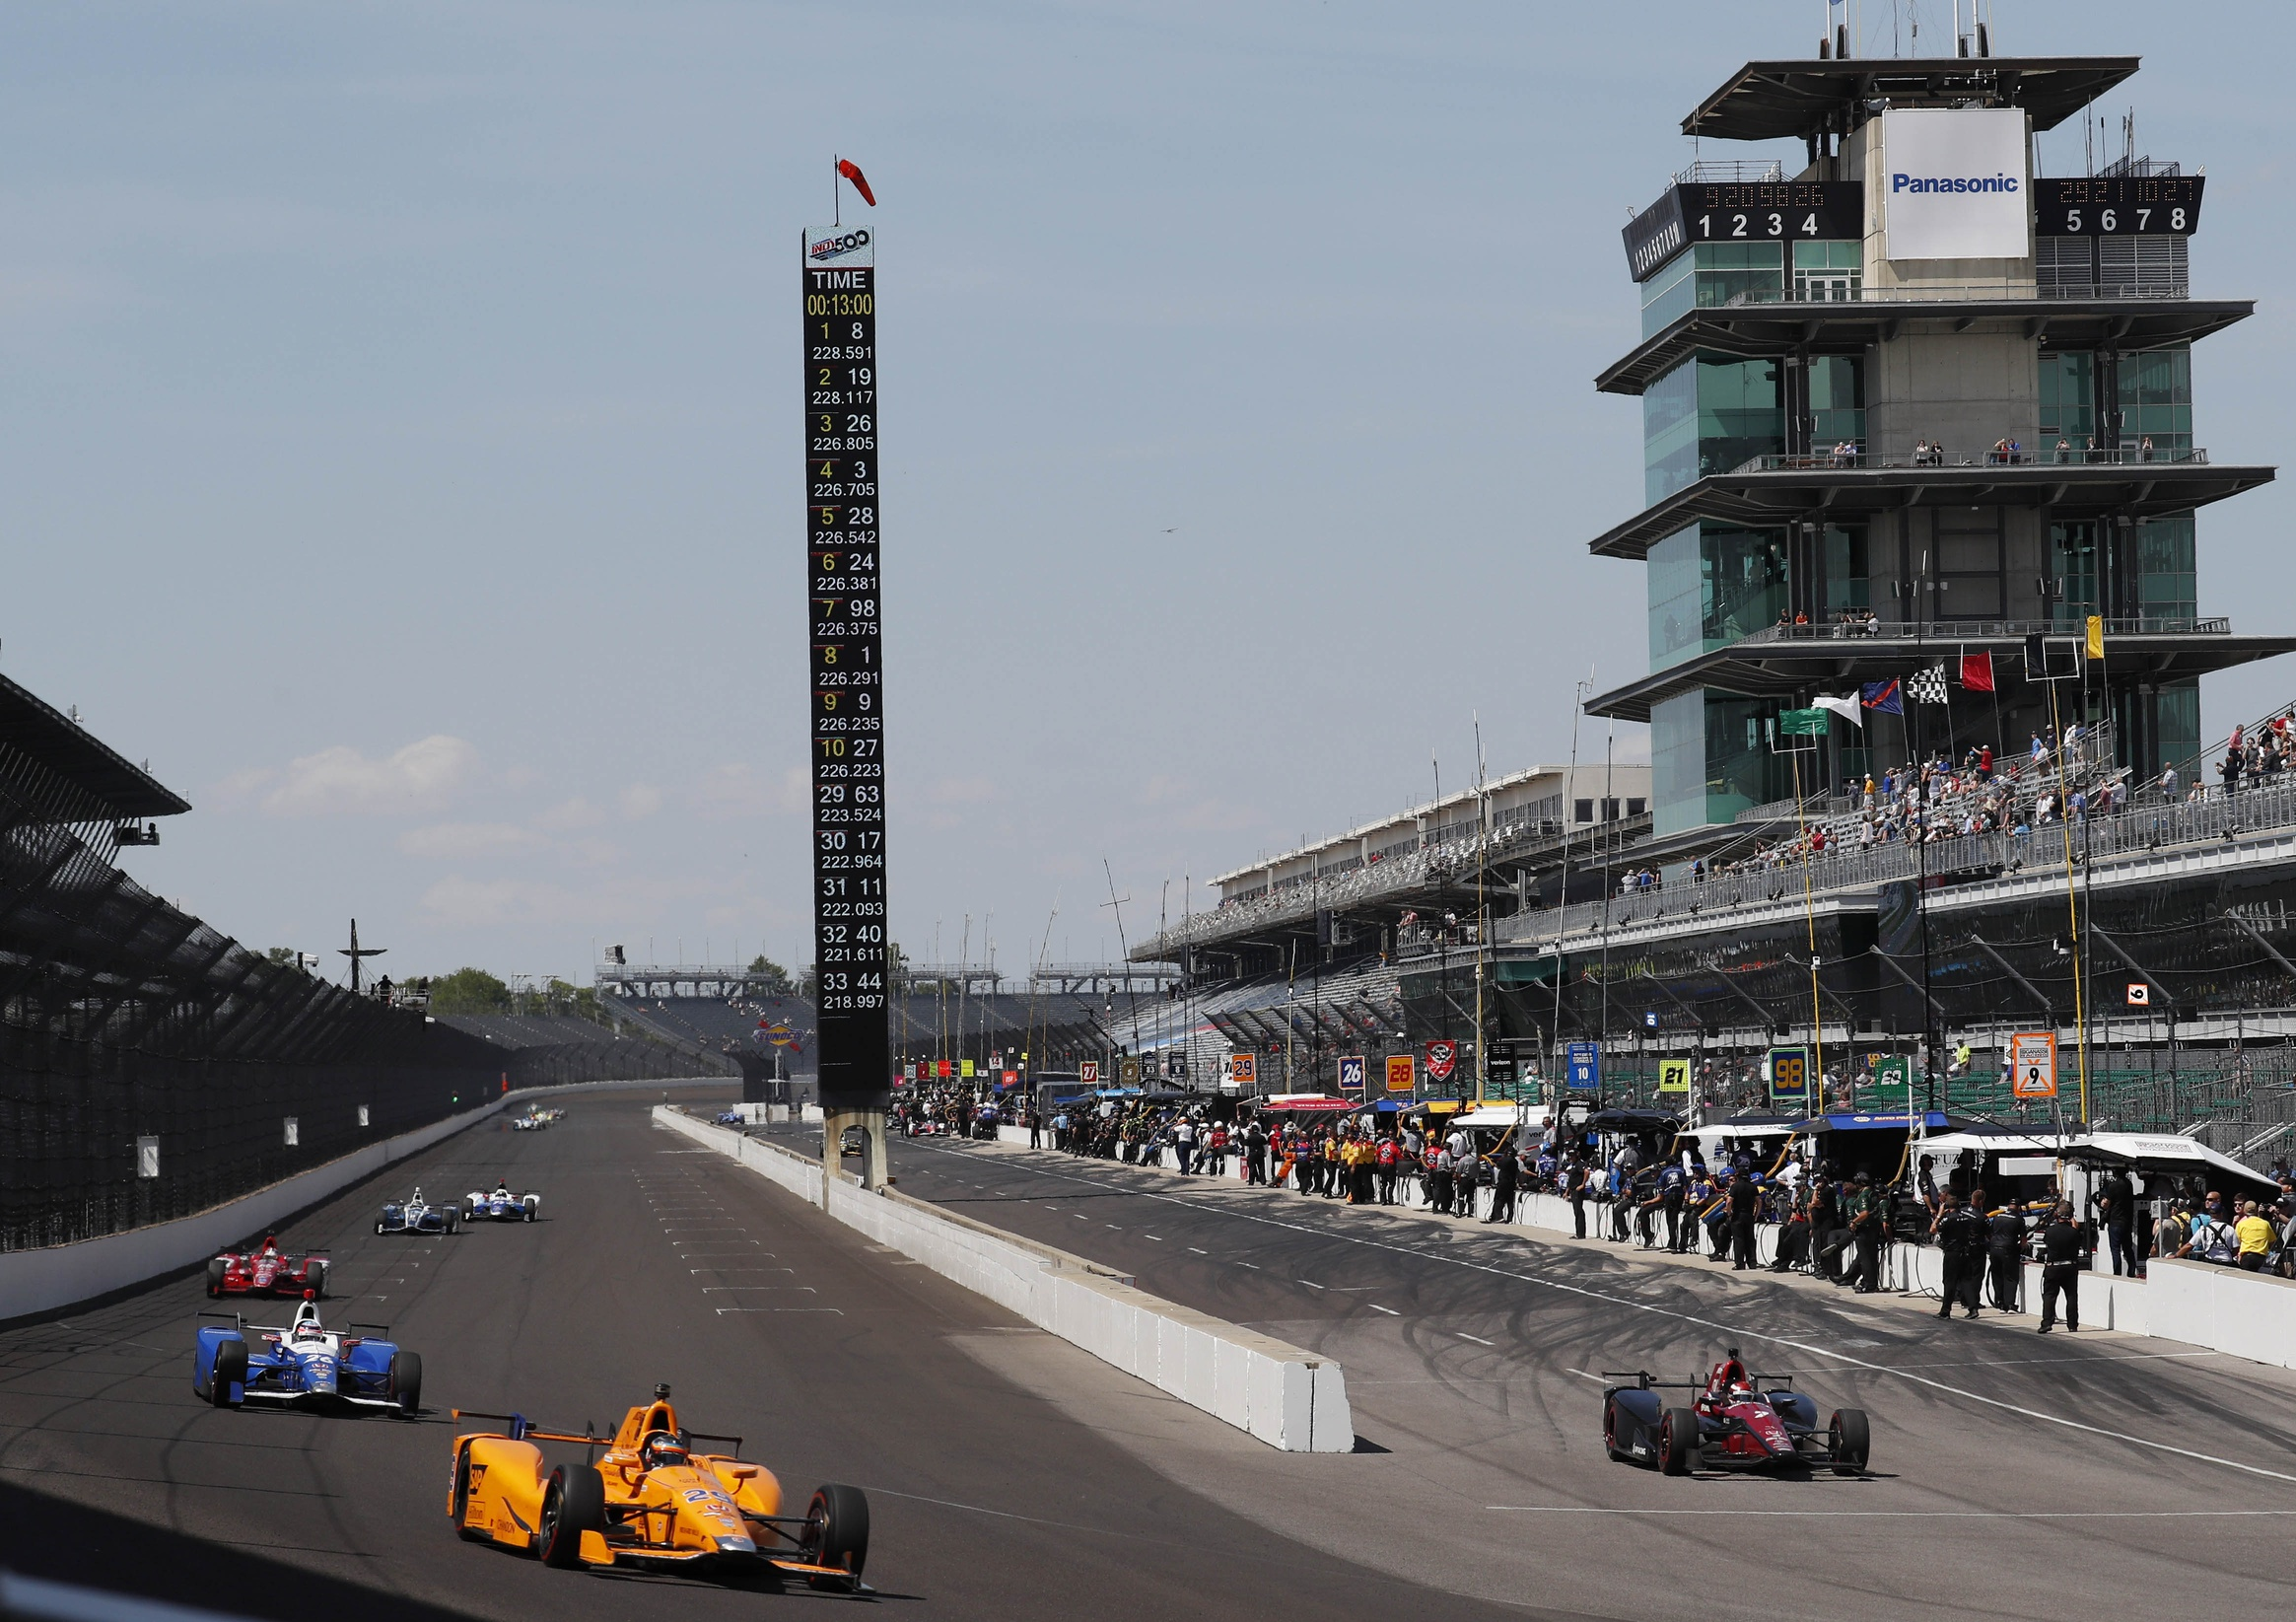 Ken Ungar on the Indy 500 TV blackout and security ...